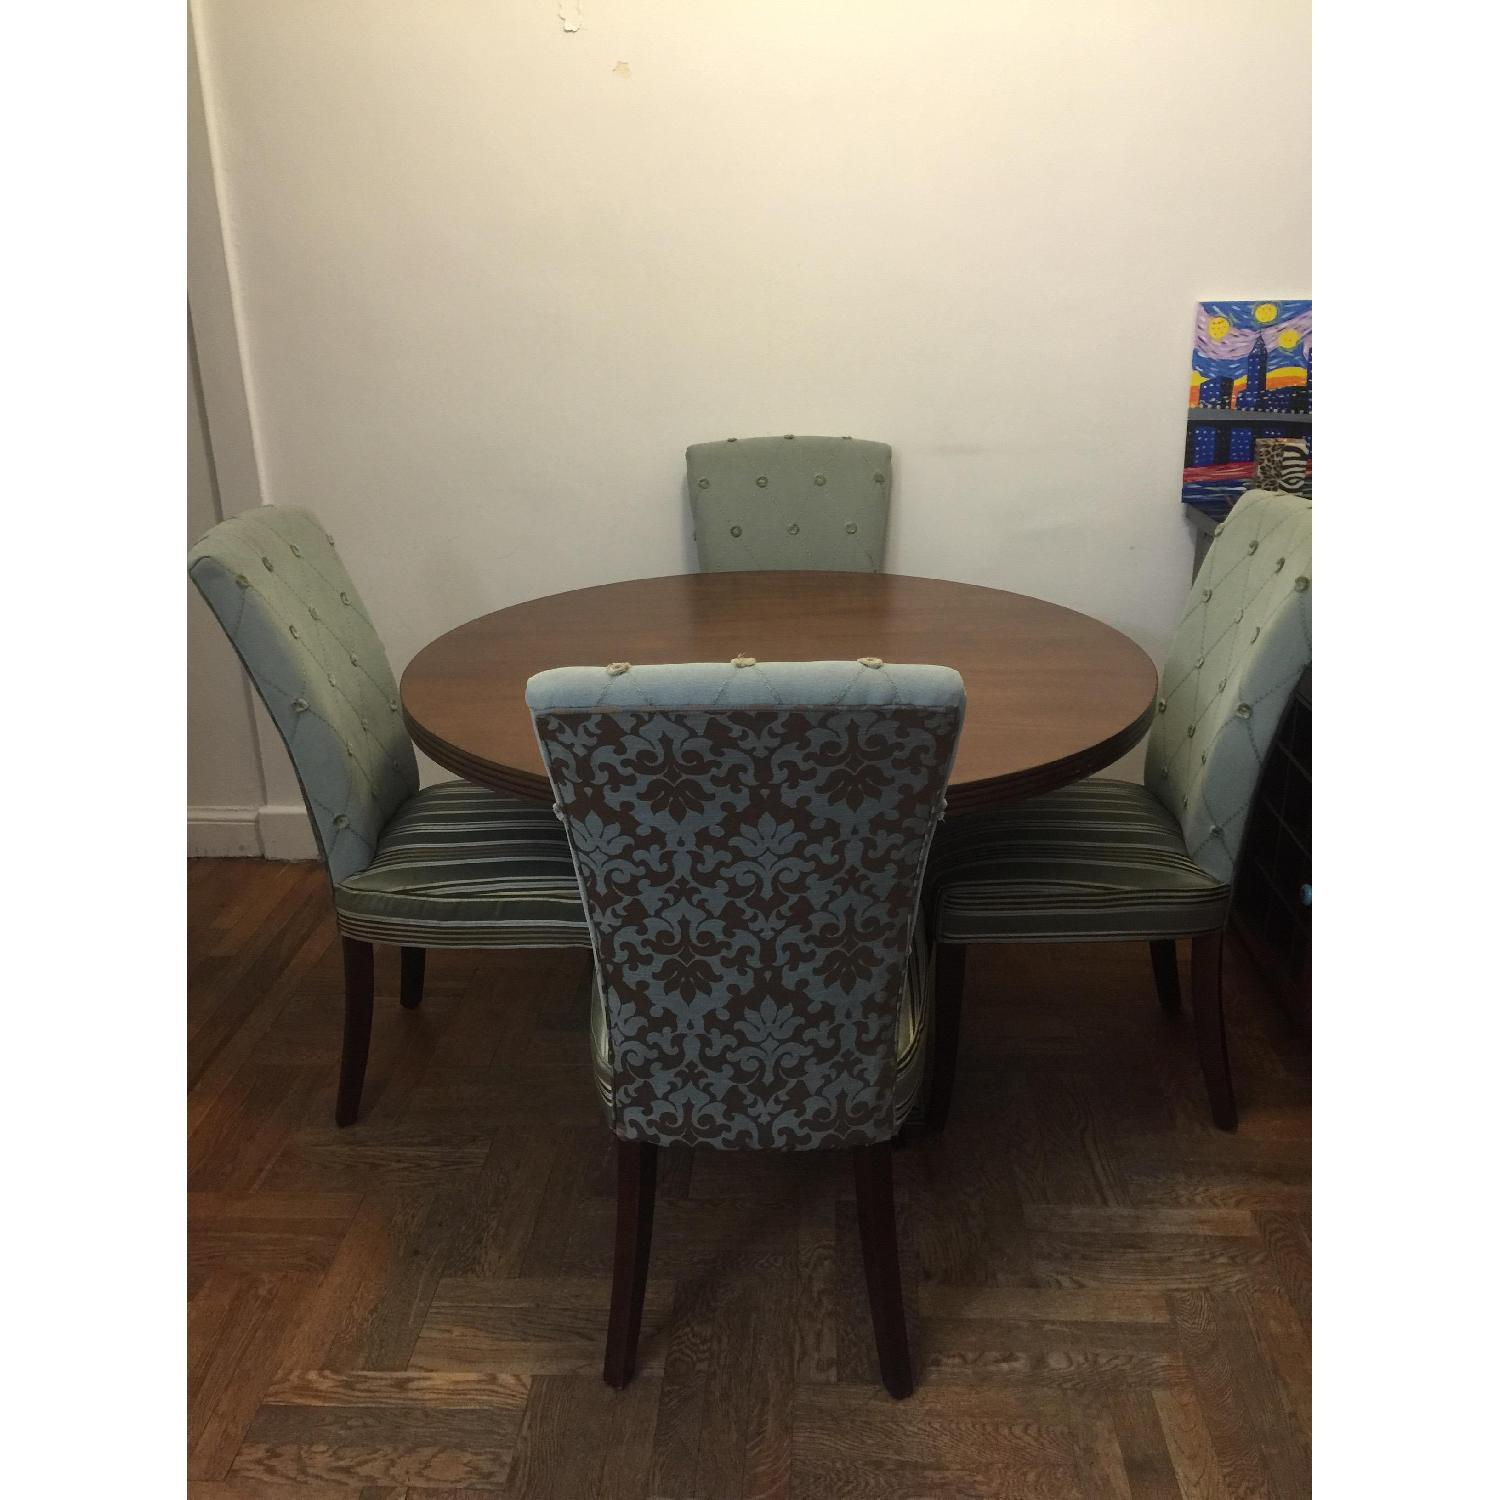 aptdeco used pier 1 dining room table and chairs for emejing dining room chairs pier one ideas ltrevents com